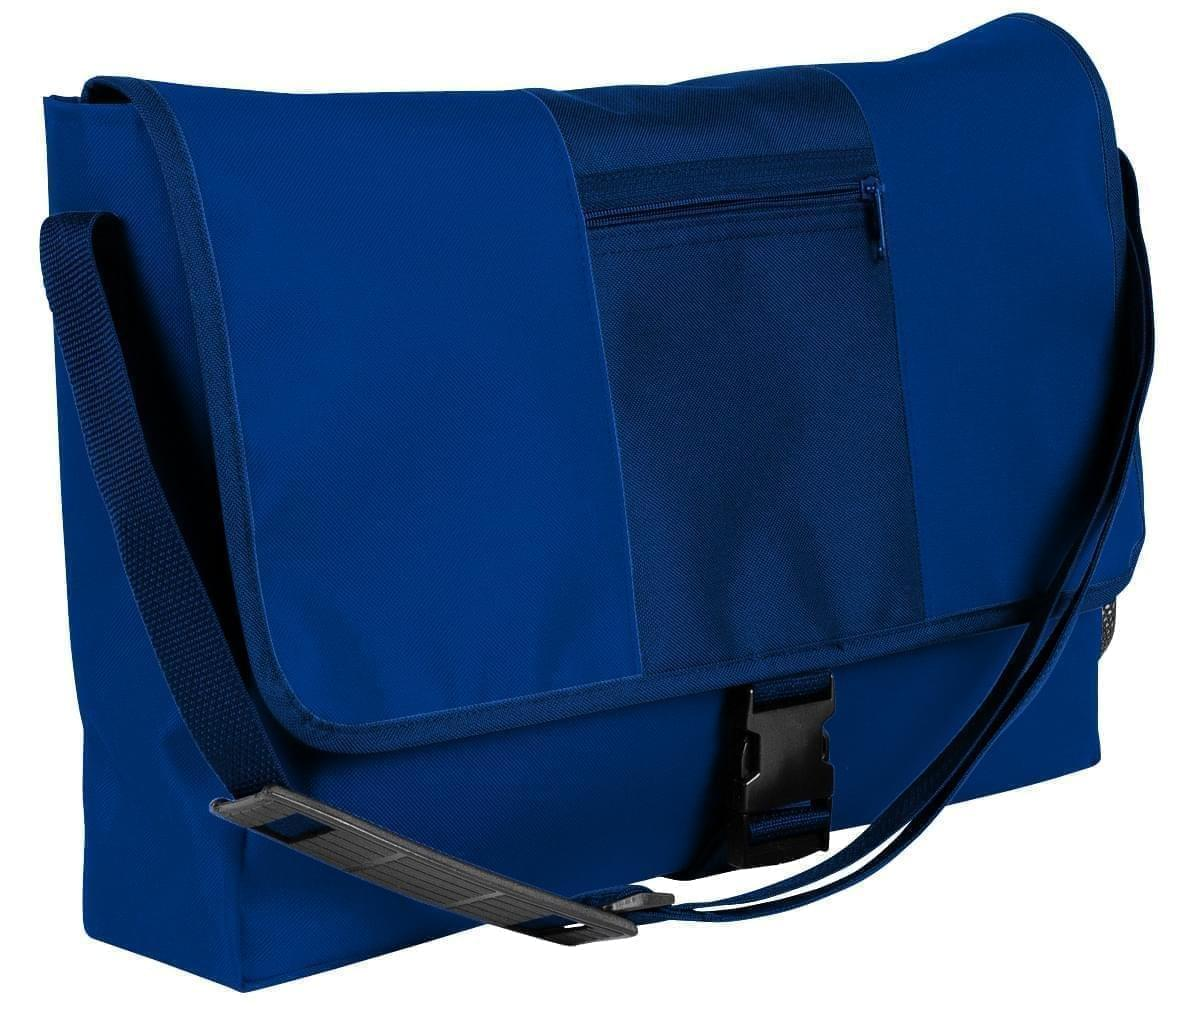 USA Made Nylon Poly Dad Shoulder Bags, Royal Blue-Navy, OHEDA19A0I